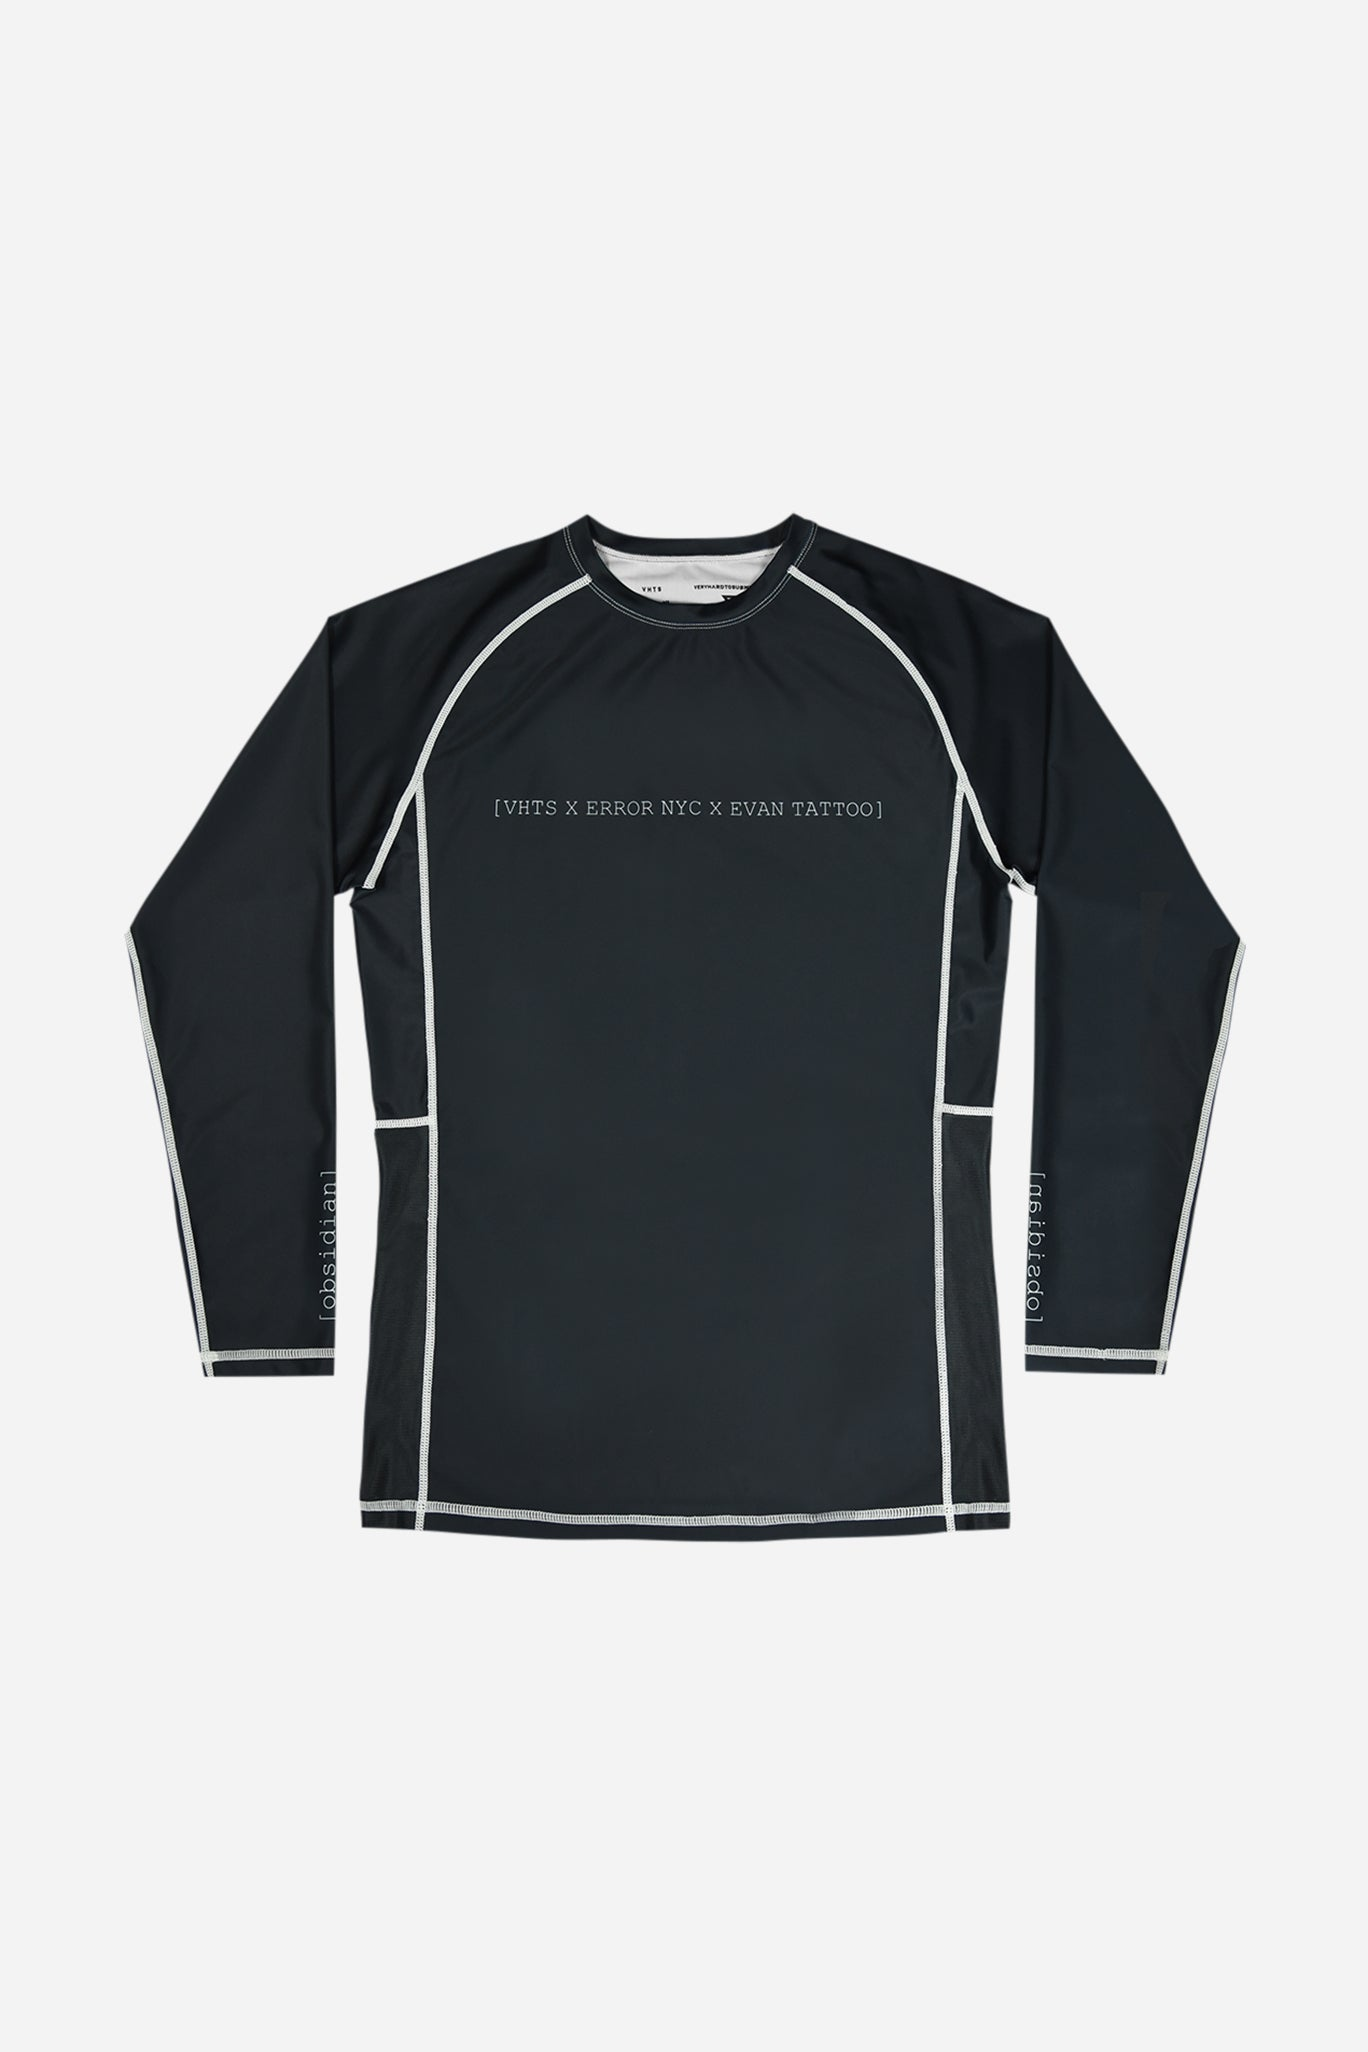 ERROR NYC x Evan TATTOO collaboration long sleeves rash guard